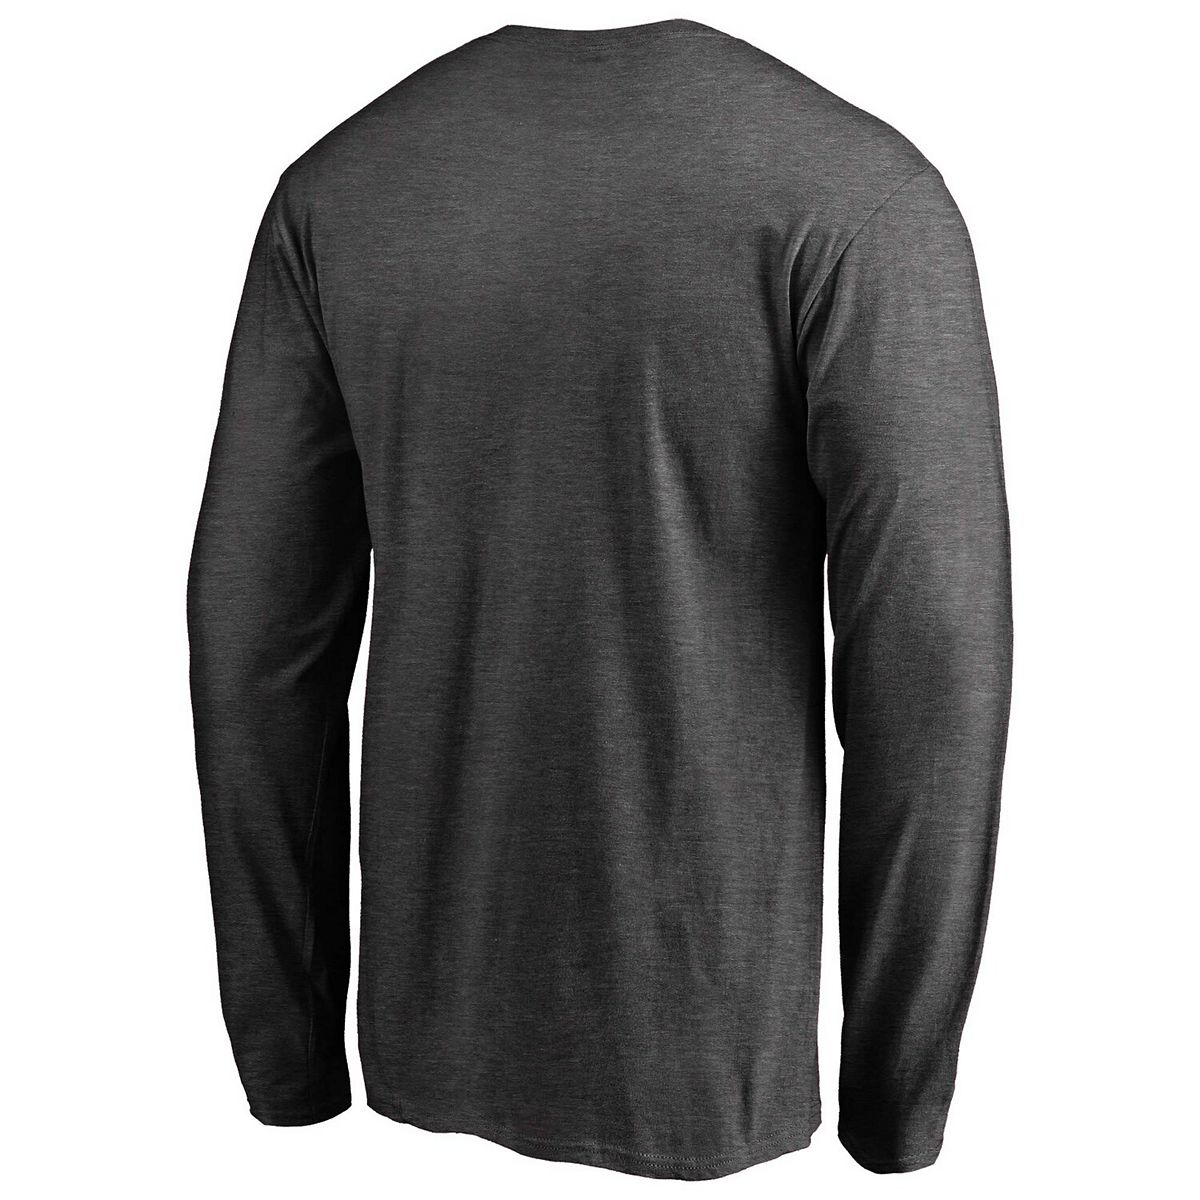 Men's Fanatics Branded Gray Montreal Canadiens Victory Arch Long Sleeve T-Shirt dHvve